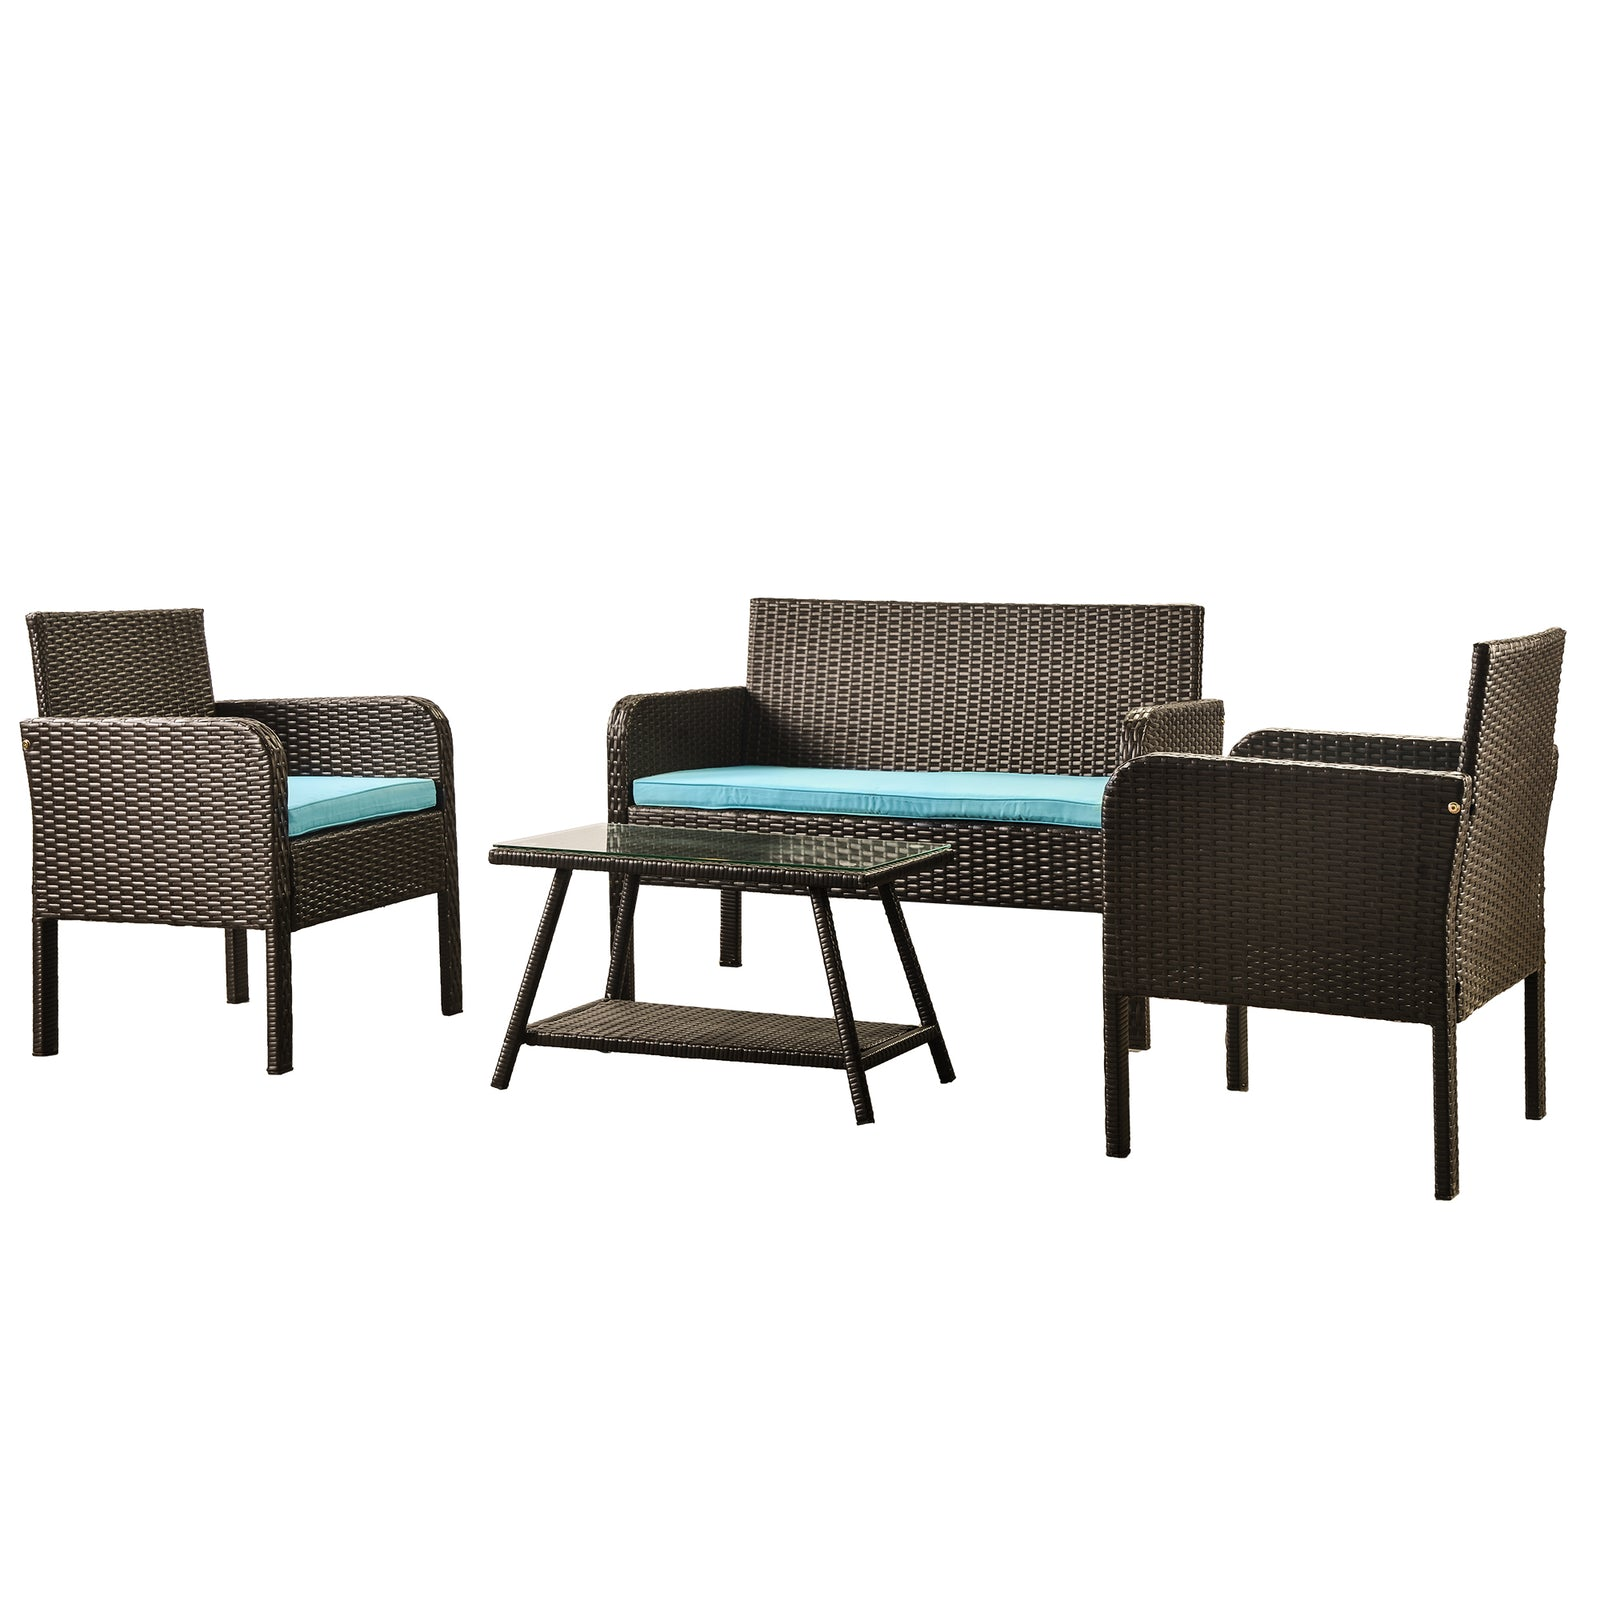 4 Counts - Rattan Sofa Seating Group with Cushions, Outdoor Rattan sofa Blue